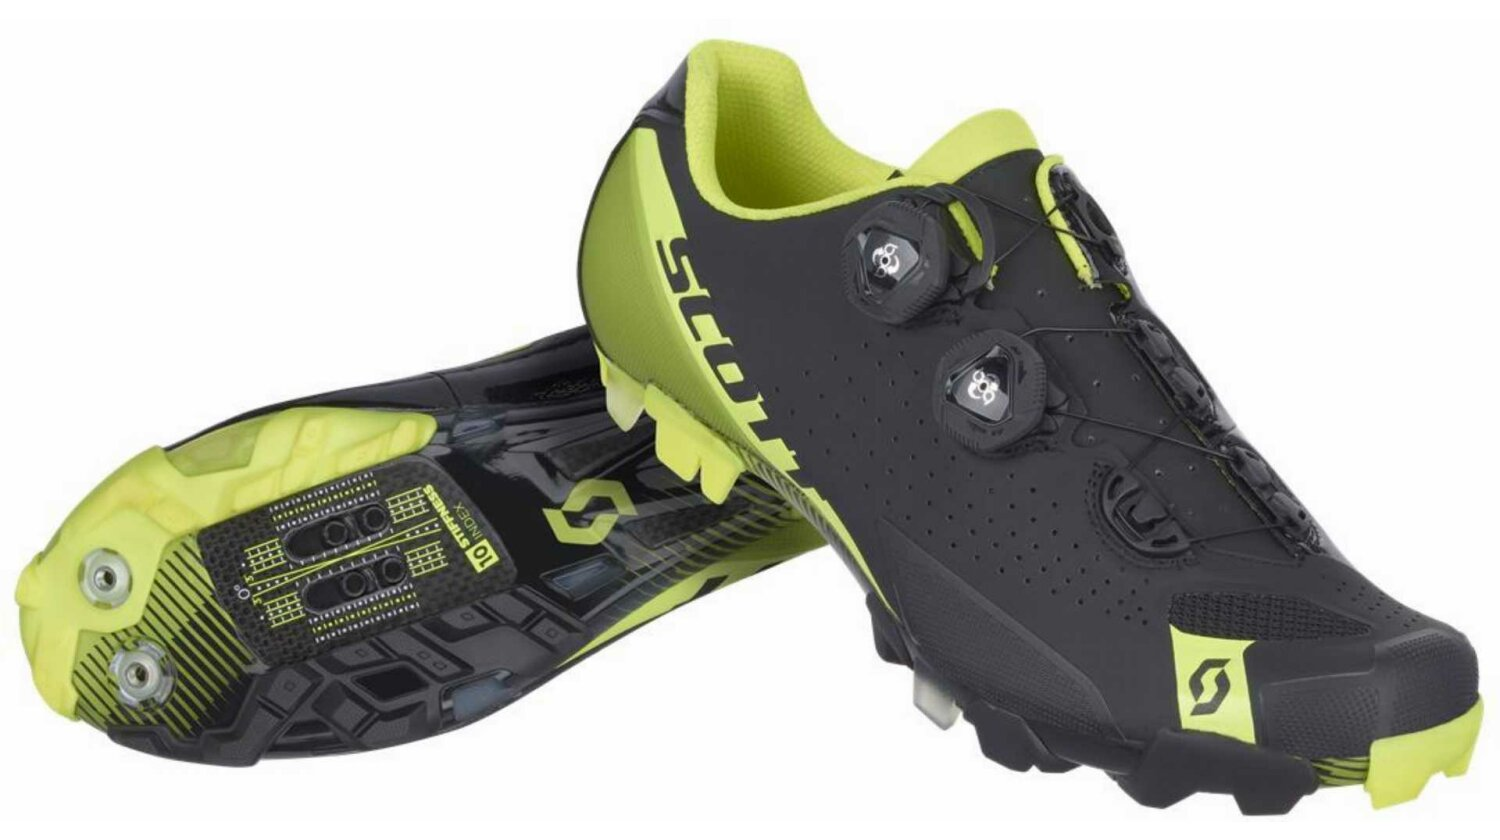 Scott MTB RC Schuh black/neon yellow 42,5